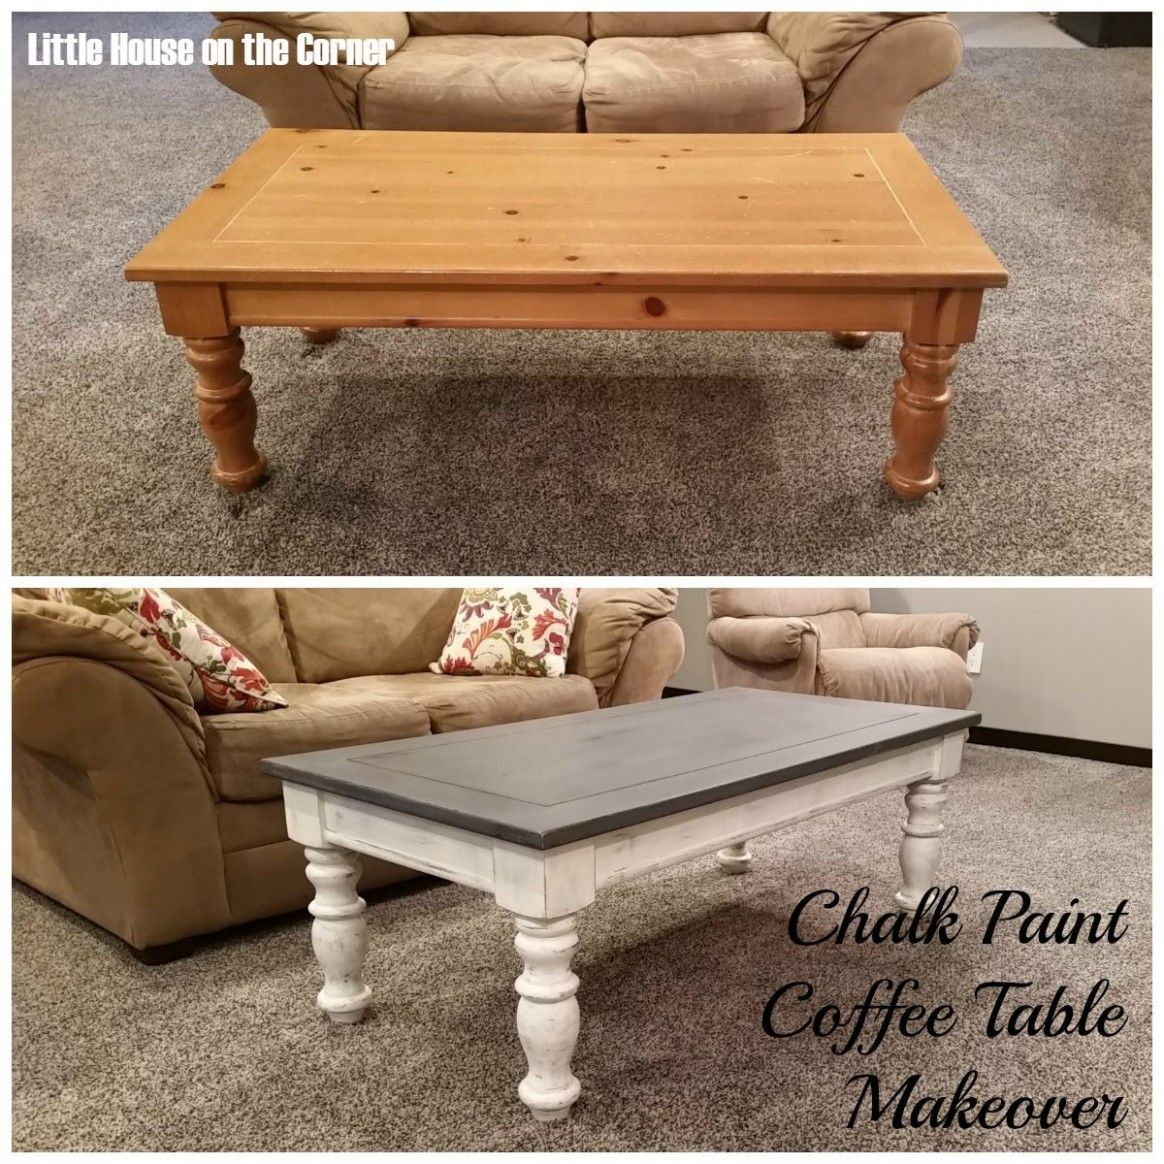 7 Doubts You Should Clarify About Ideas For Repainting A Coffee Table We Re Looking Of Course To The End Of The Year A Continued And Agonizing Year With Yet Dengan Gambar